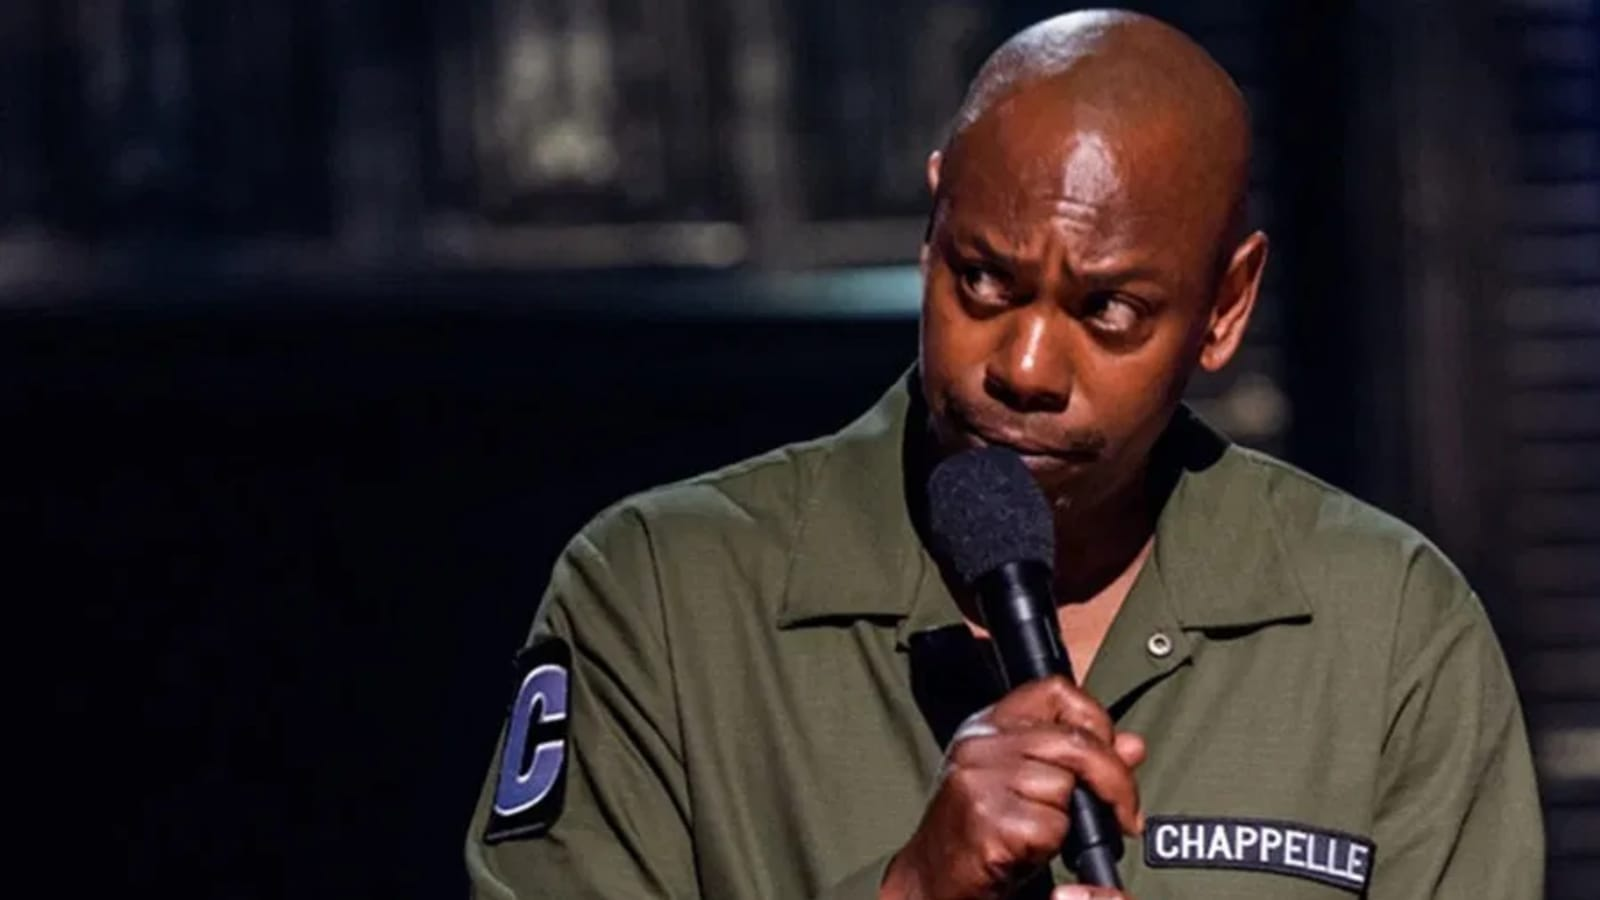 dave chappelle s netflix special is offending critics but viewers don t care dave chappelle s netflix special is